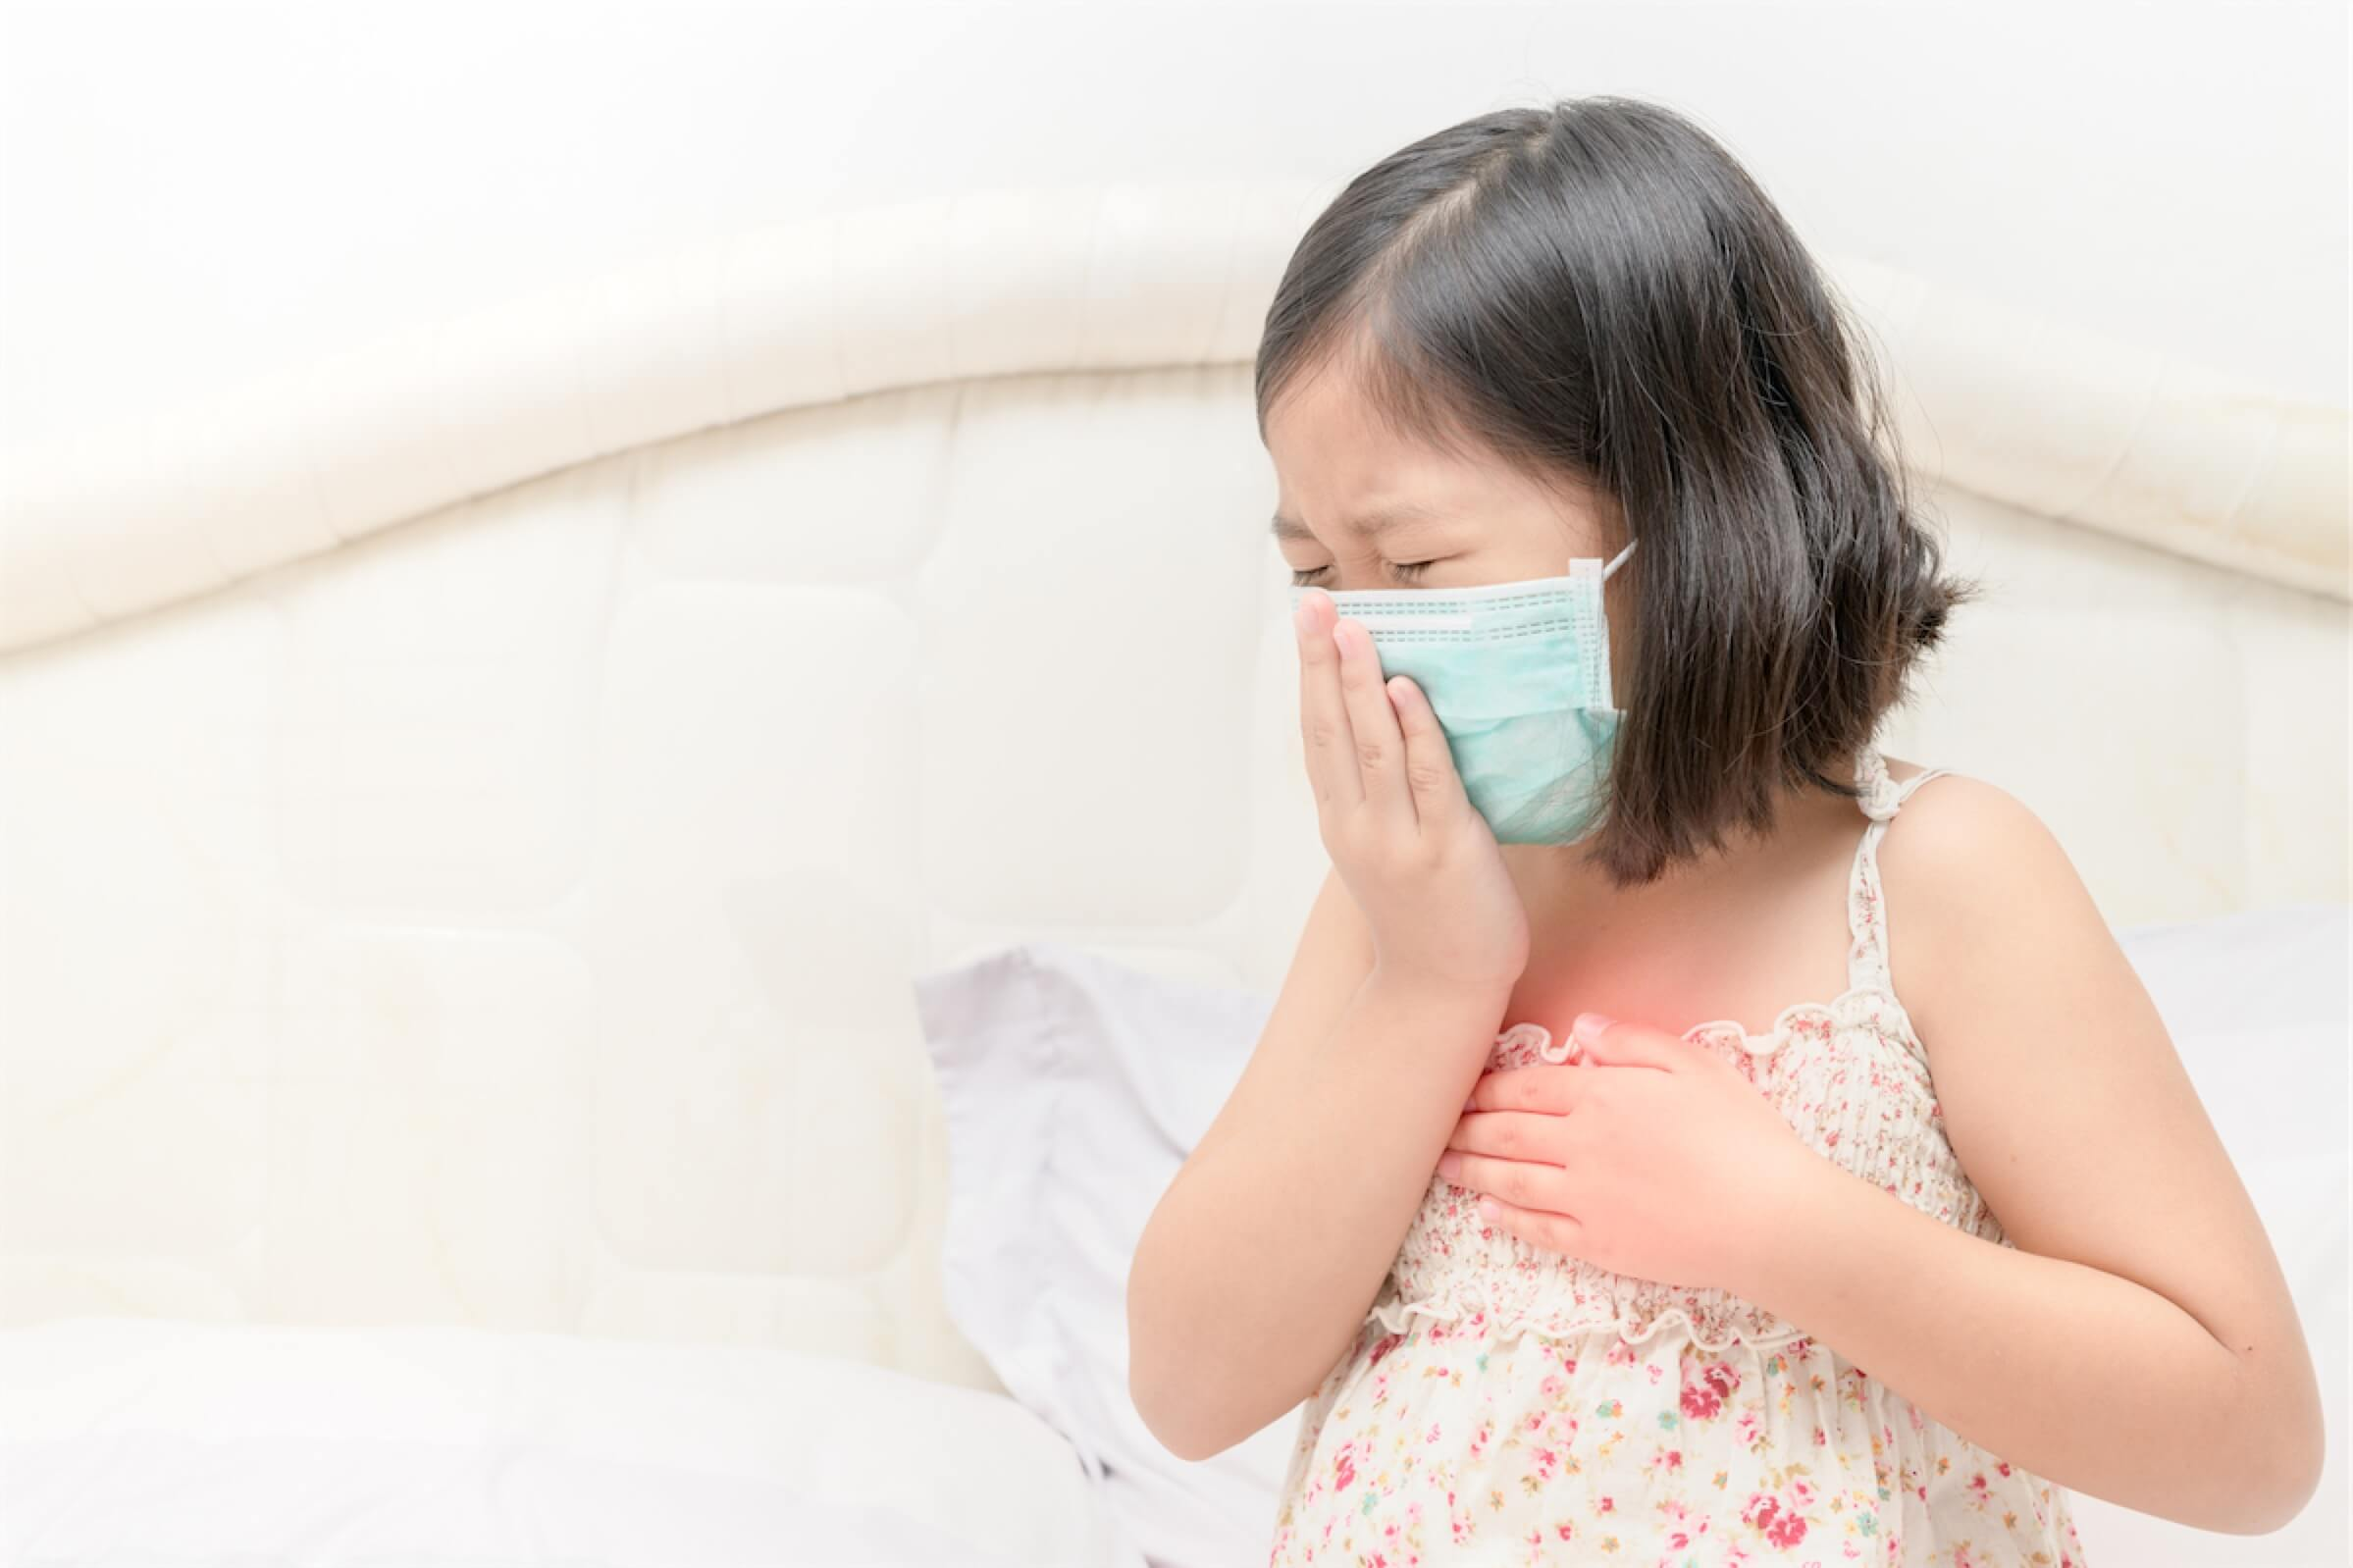 The 100 days cough: what are the symptoms and what can you do?